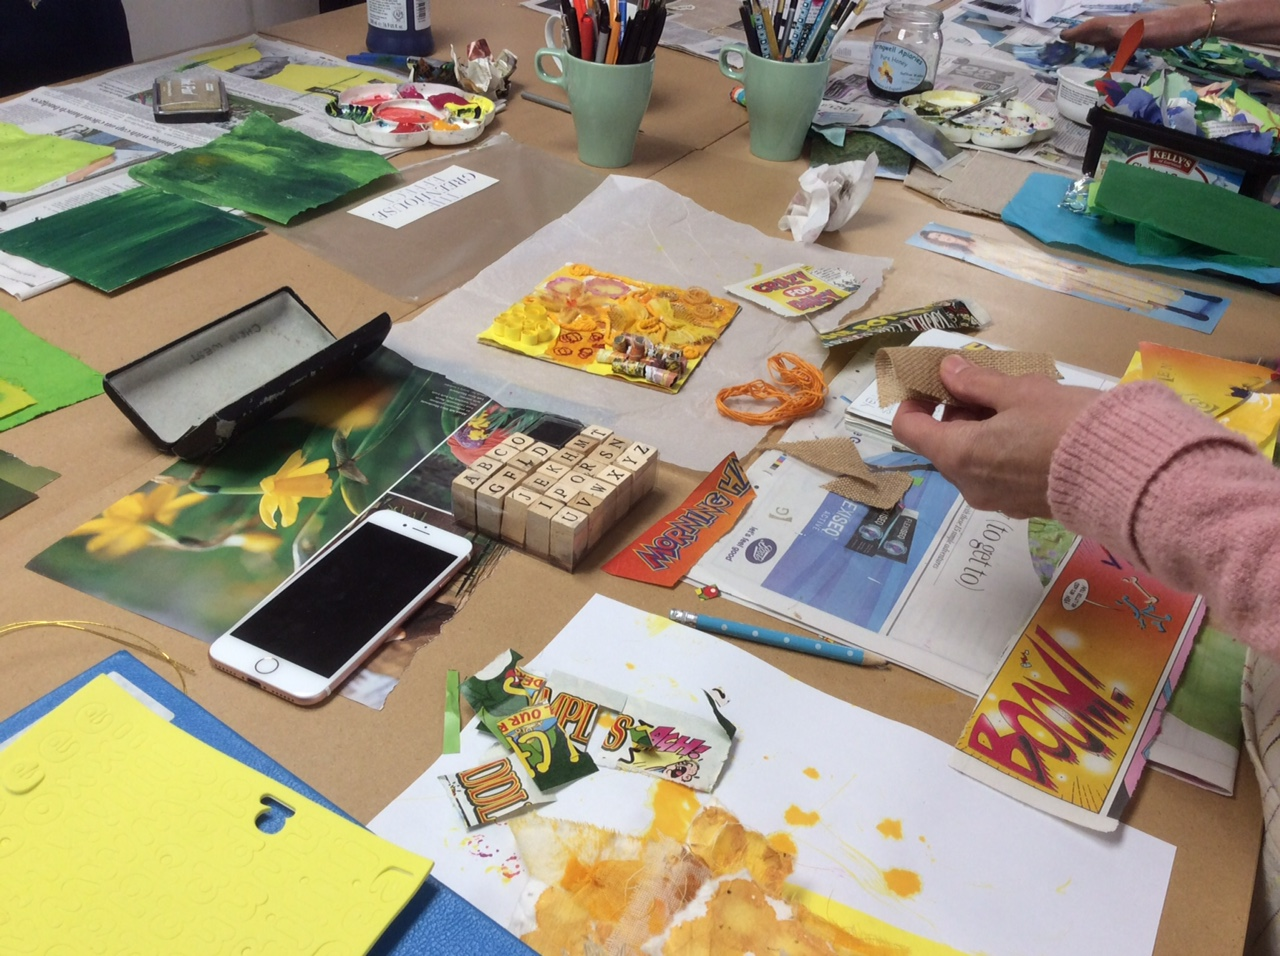 Yellows Textiles & Mixed Media with Gill Collinson at Cambridge Art Makers